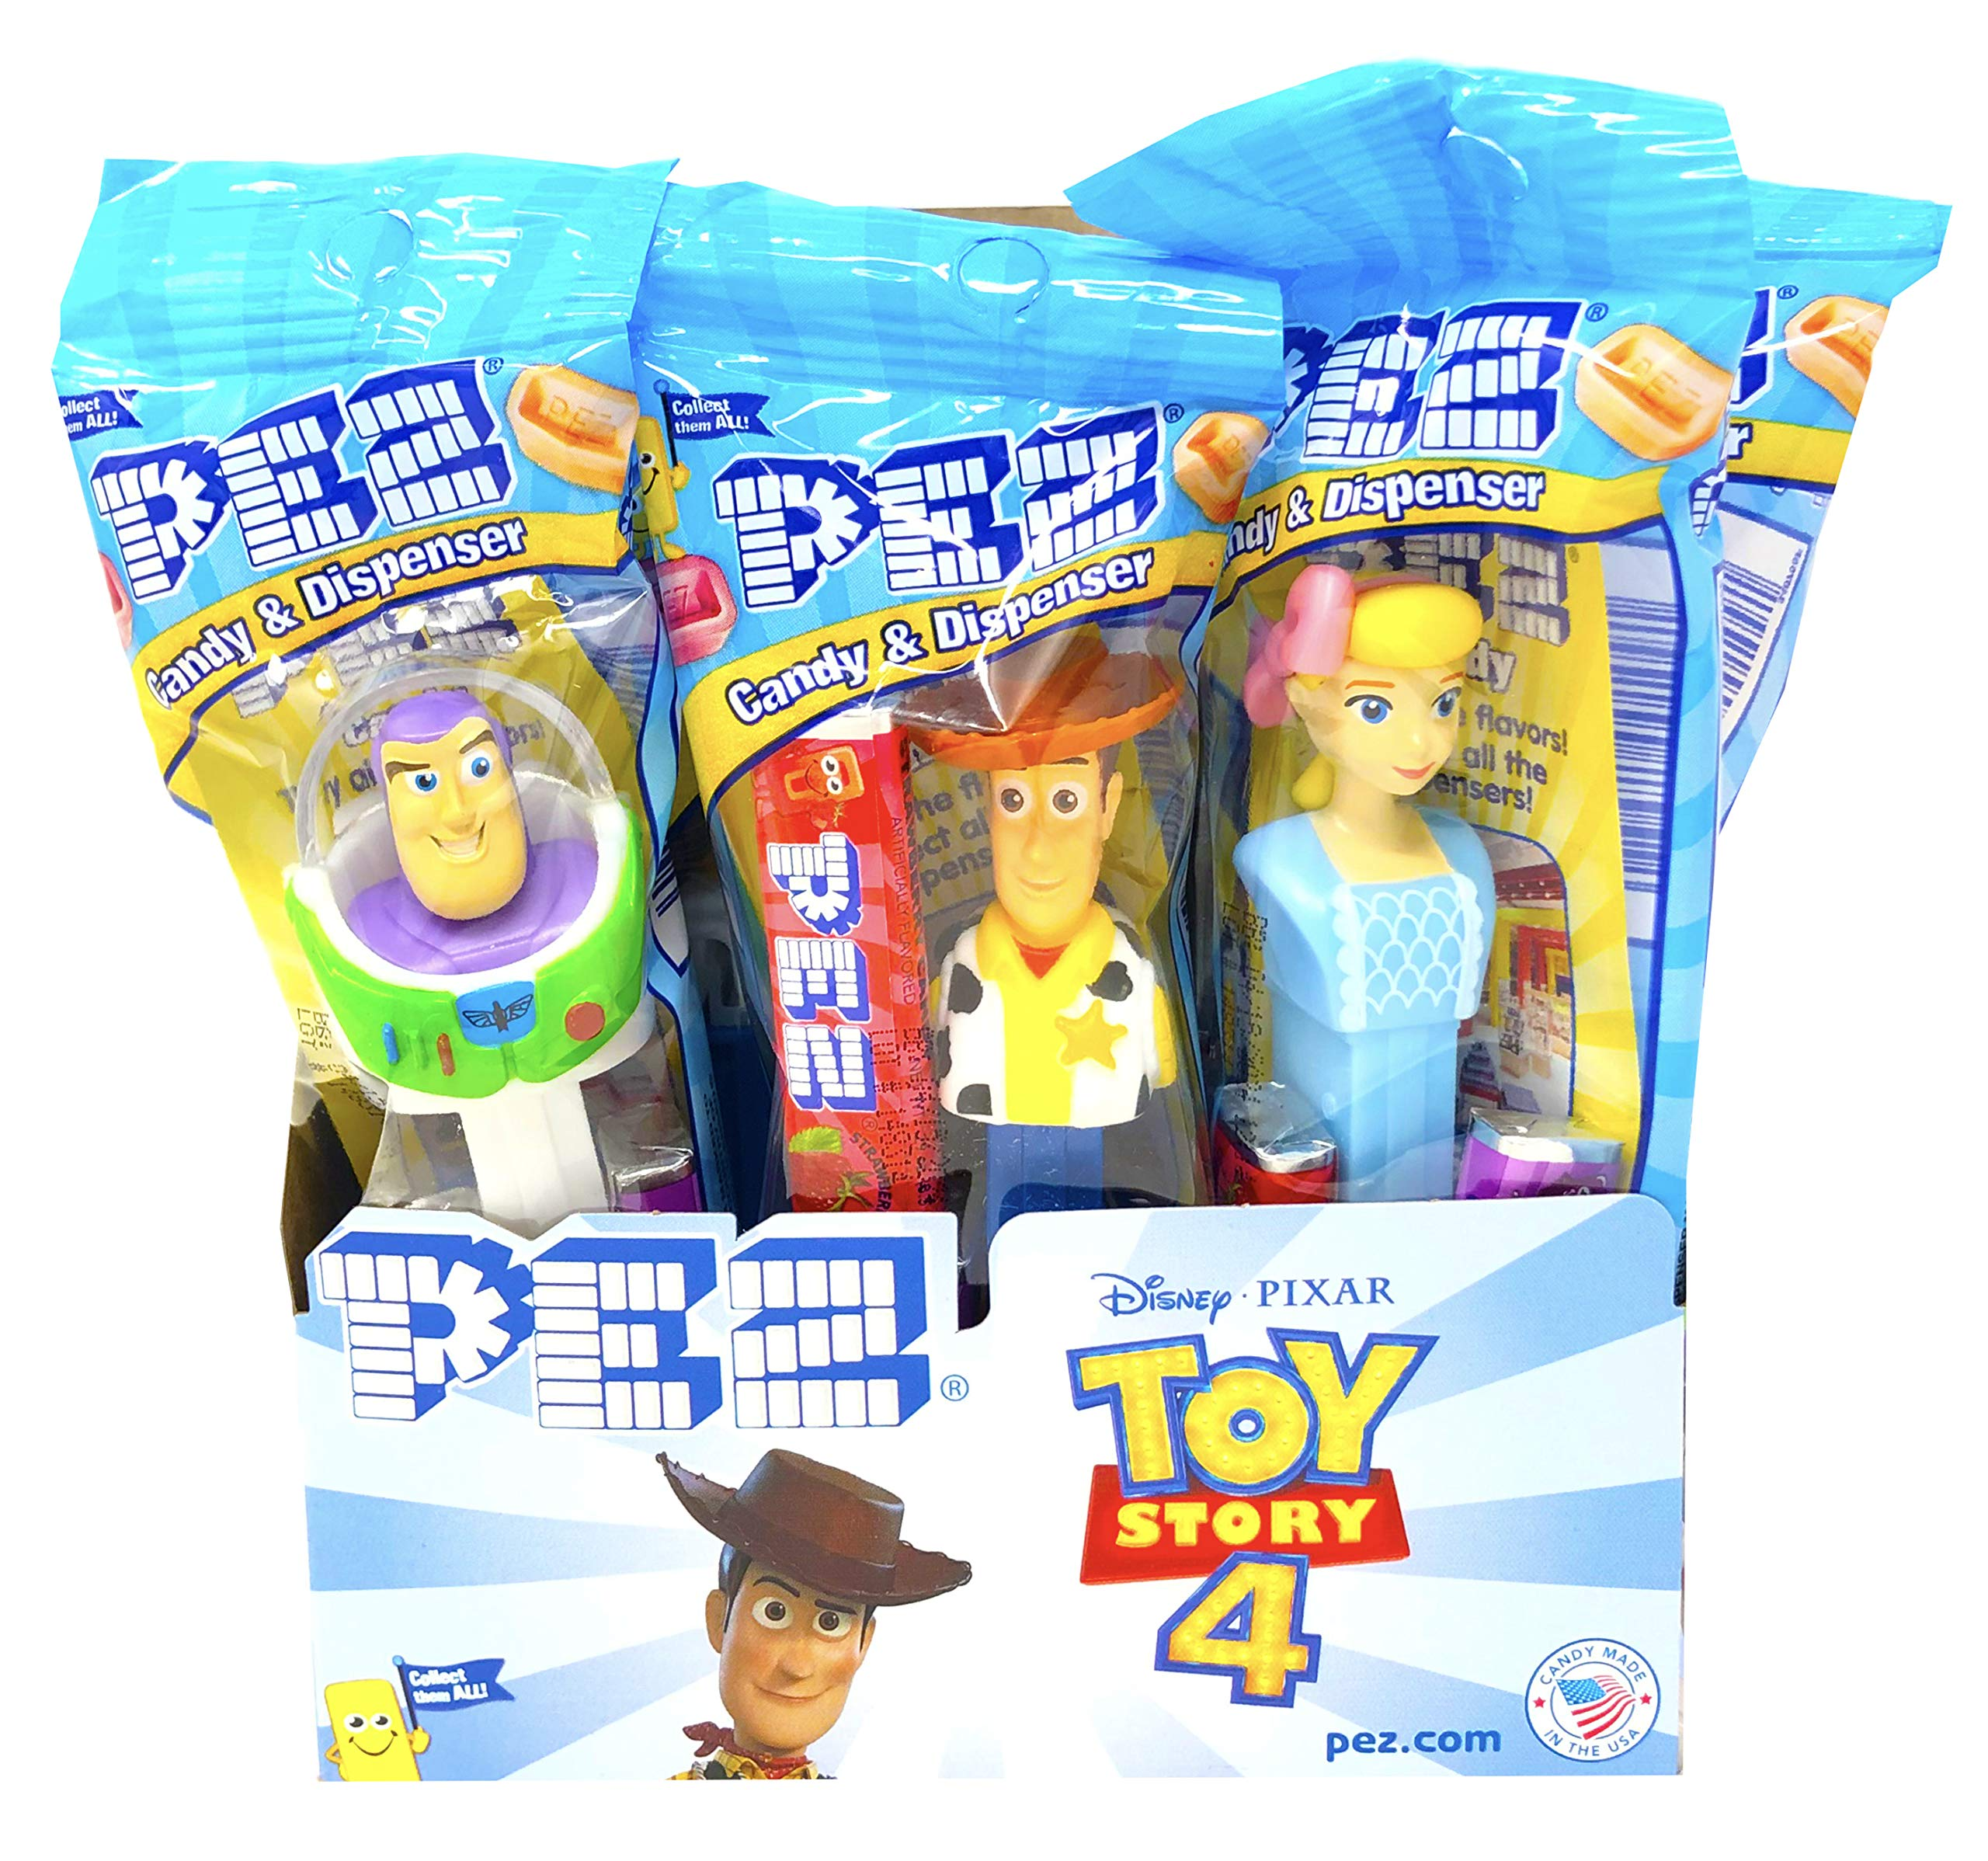 PEZ Toy Story 4 Candy Dispensers Individually Wrapped PEZ Candy and Dispensers with Tru Inertia Kazoo 12 Pack